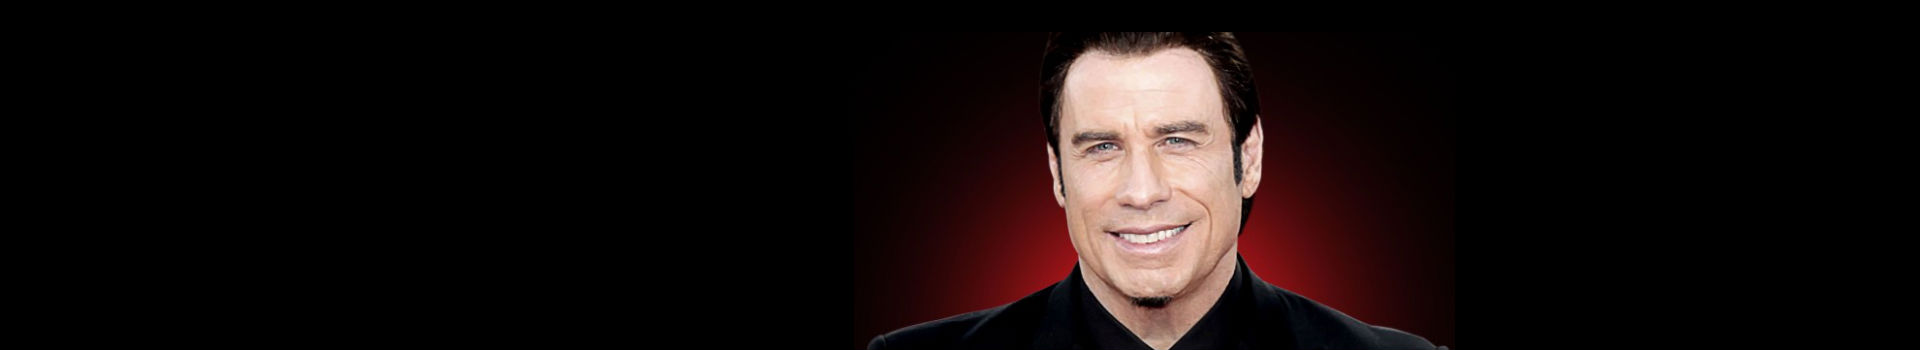 A Conversation With John Travolta banner image